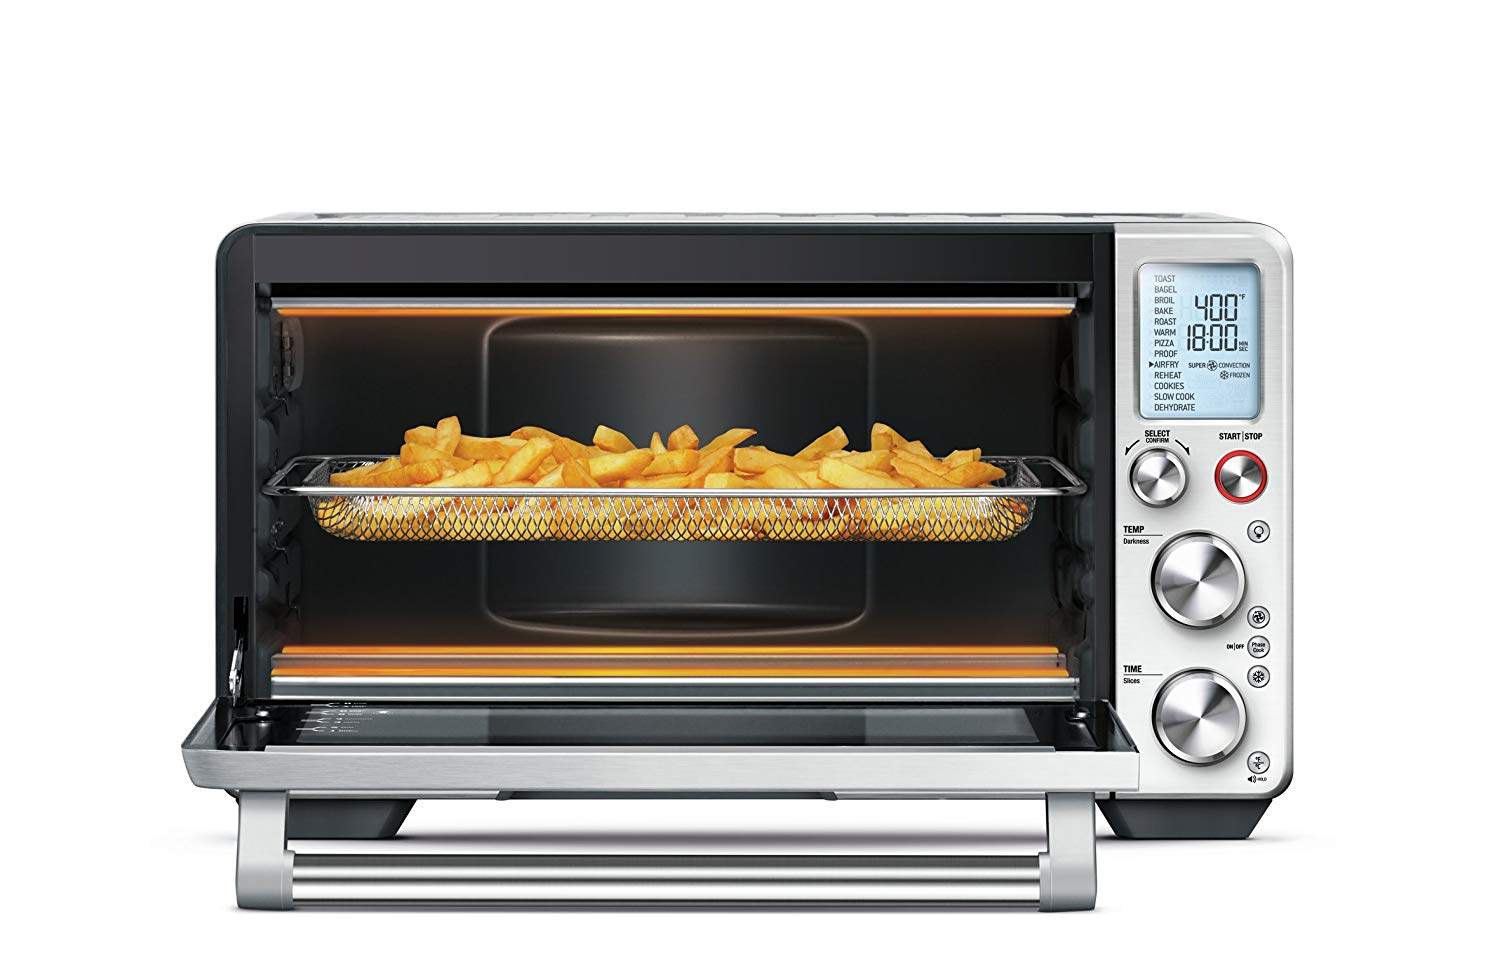 The one oven to rule them all - If she's been hinting at an air fryer for awhile, forget the air fryer. I recommend you consider a small convection oven instead. It will double as a powerful oven, air fryer and dehydrator. This is a workhorse for our home and guaranteed to make you #husbandoftheyear.